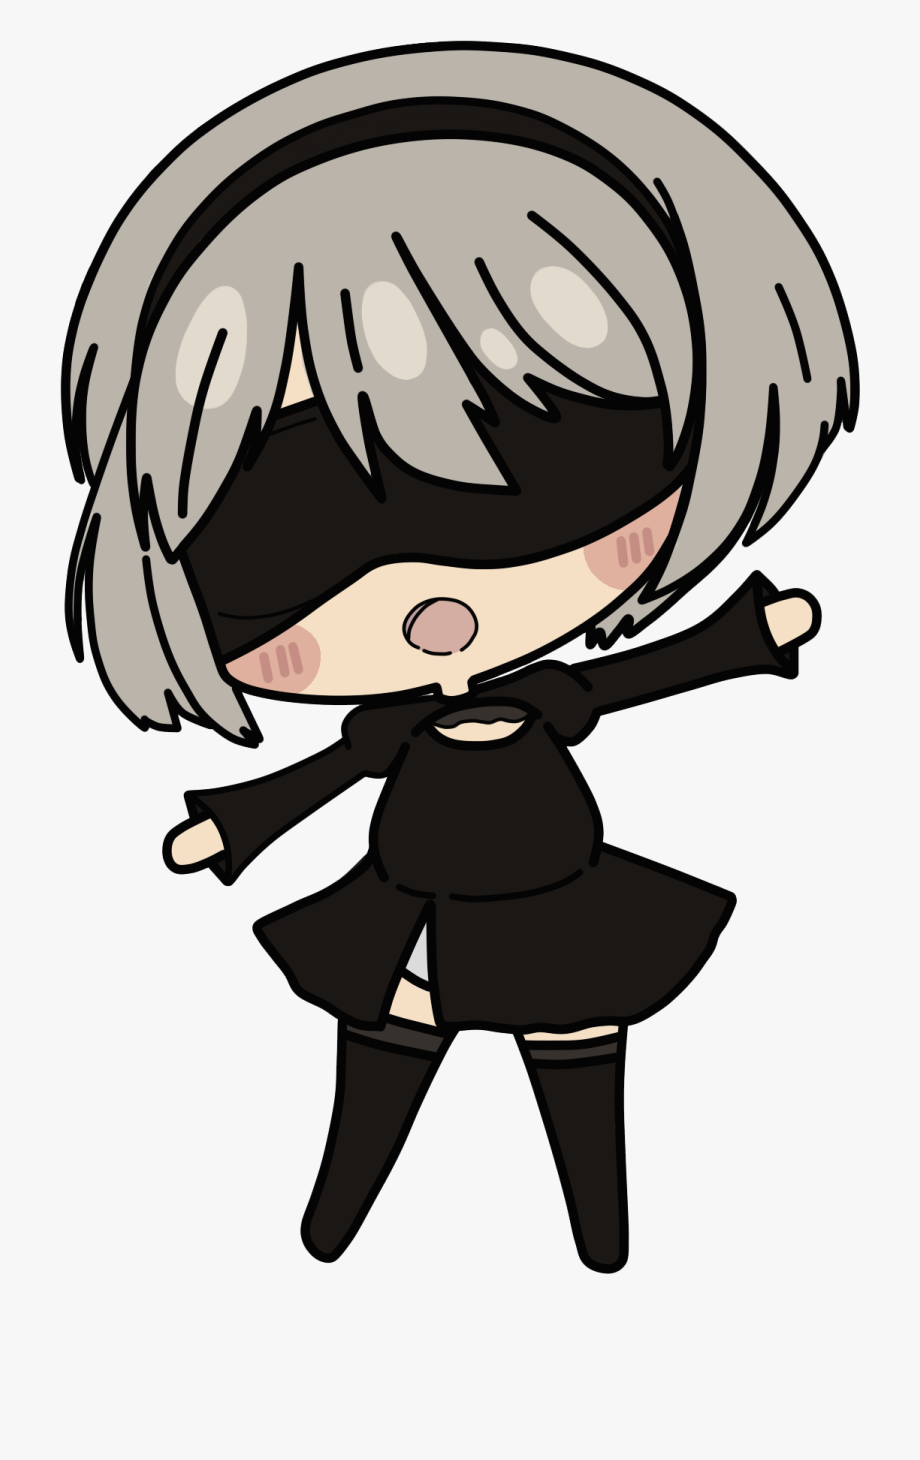 2b From Nier Automata.